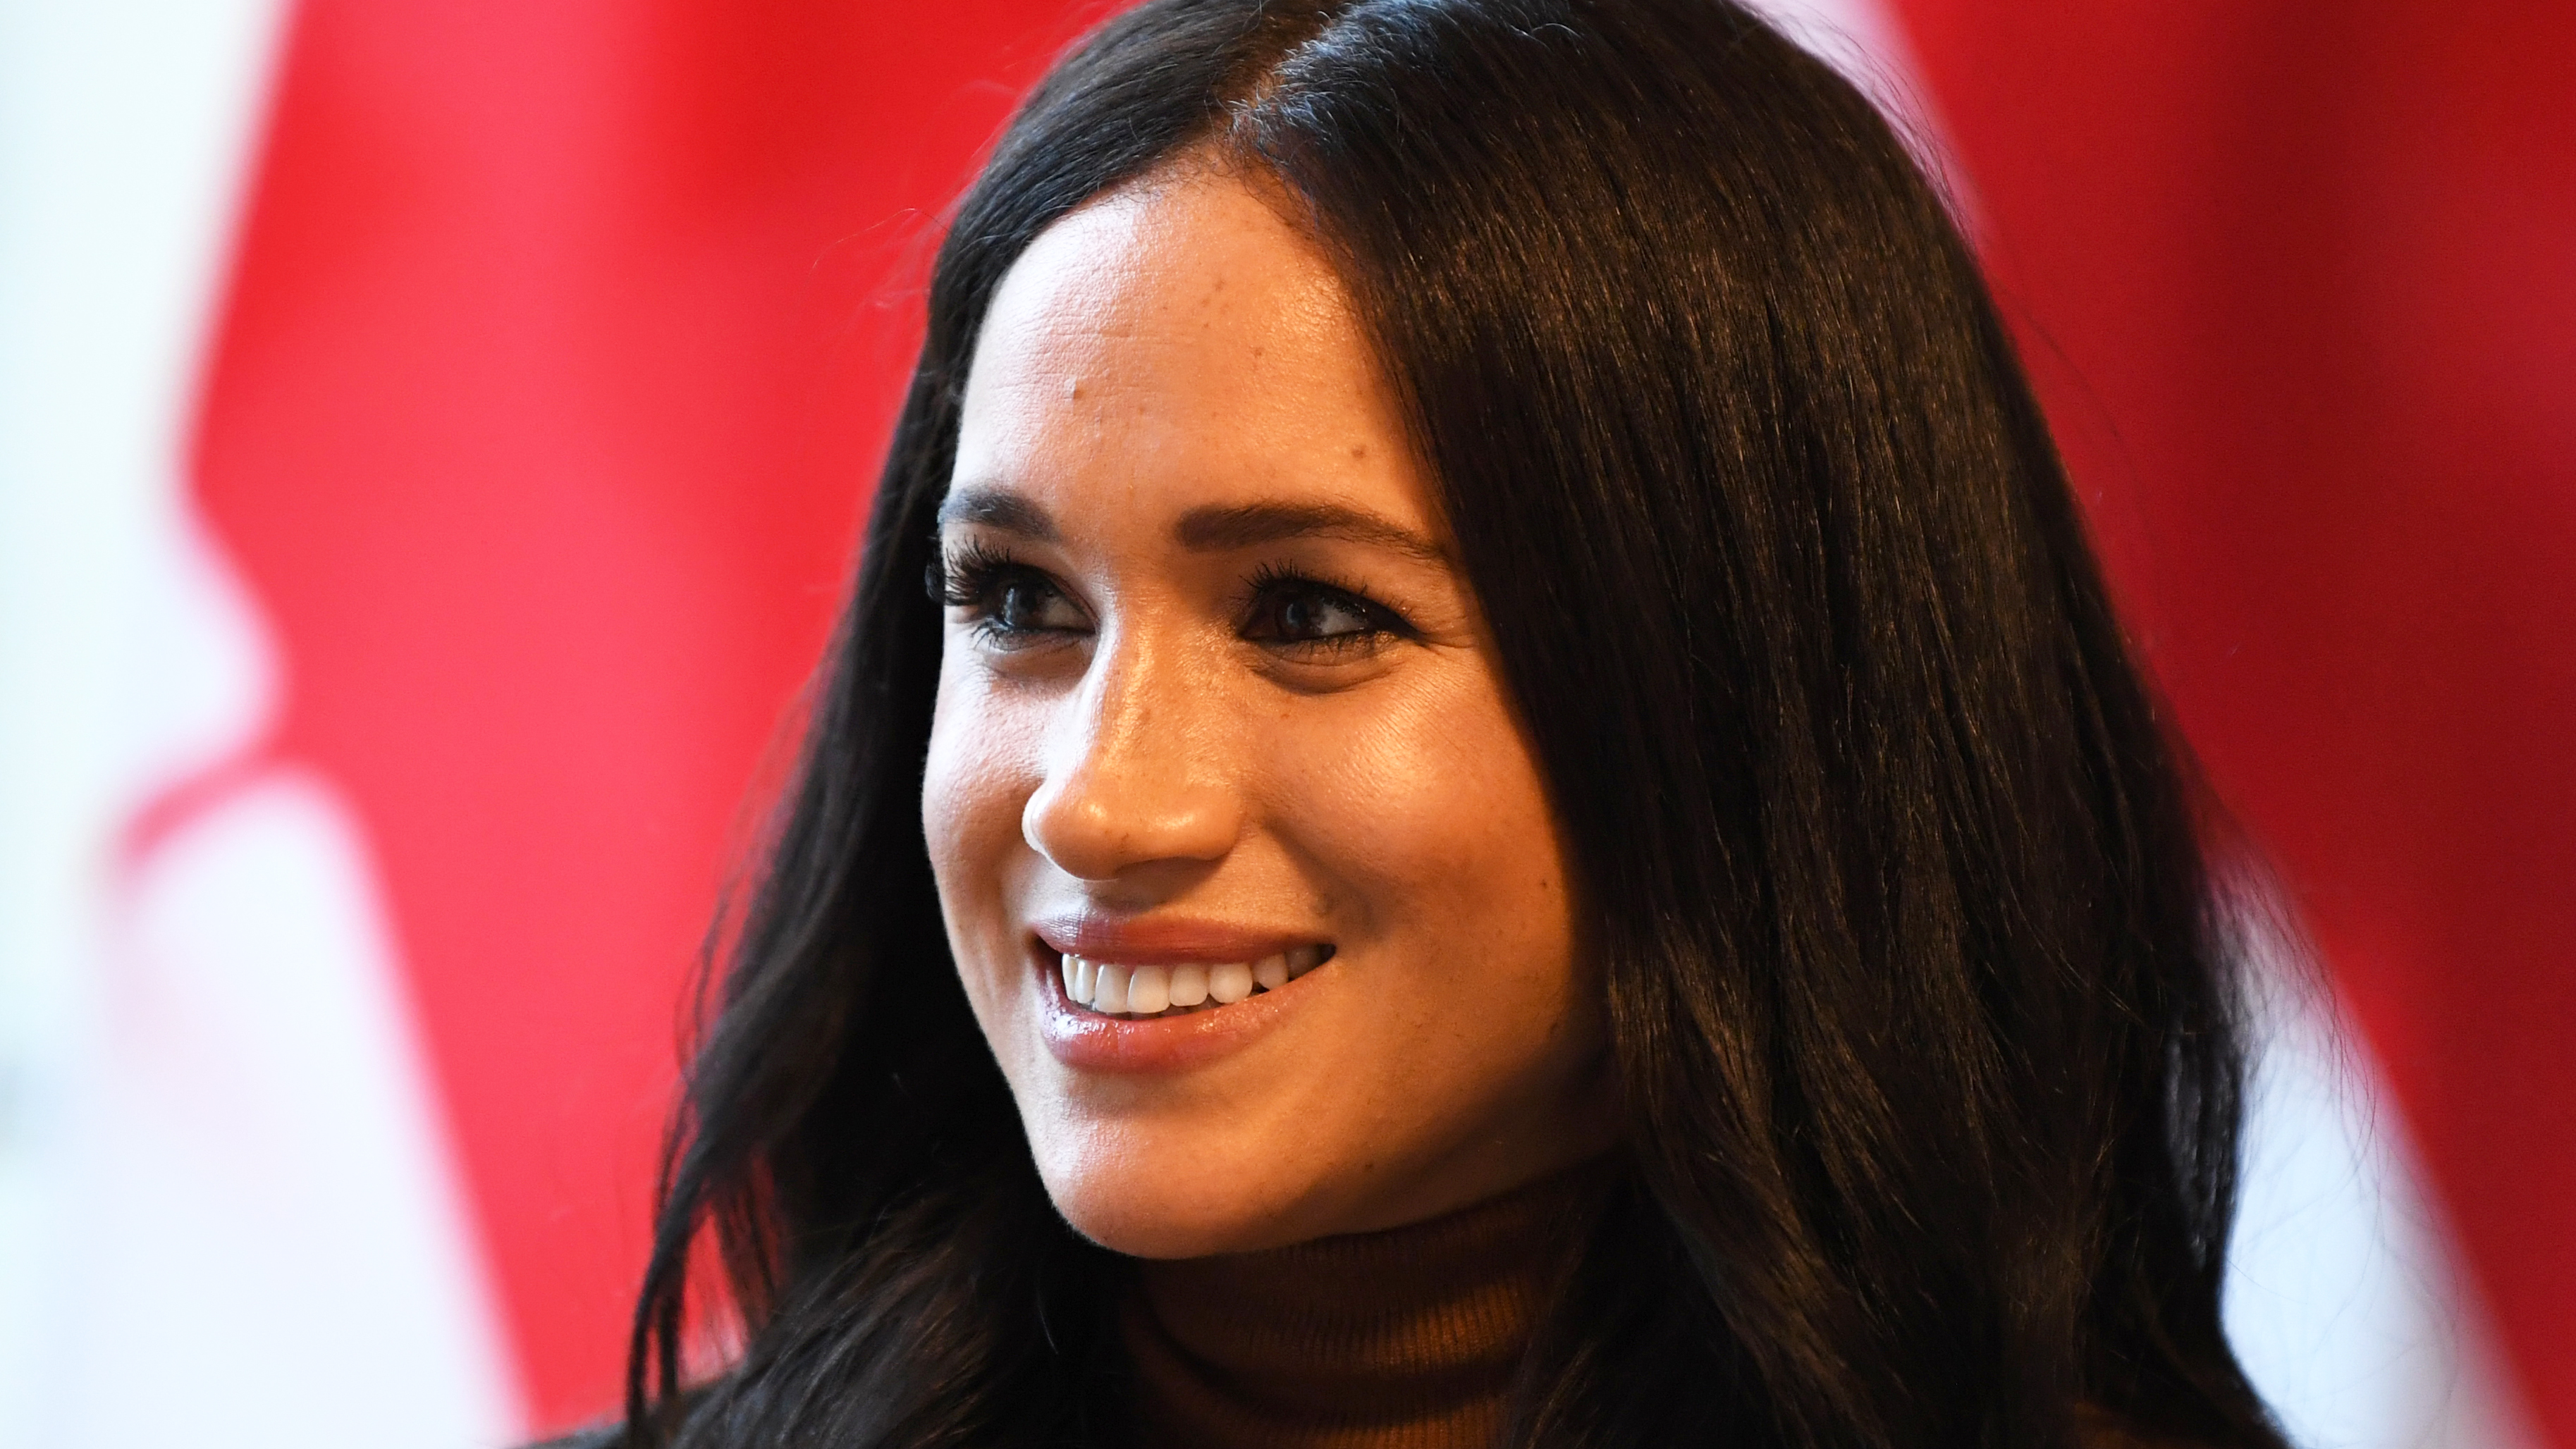 Westlake Legal Group Meghan-Markle-GETTY-crop Missouri mom who looks like Meghan Markle stuns the Internet Gerren Keith Gaynor fox-news/us/us-regions/midwest/missouri fox-news/topic/royals fox-news/lifestyle/parenting fox-news/entertainment/celebrity-news/meghan-markle fox news fnc/lifestyle fnc article 76d2eed7-0d7c-5935-ab90-548589c7eb7b